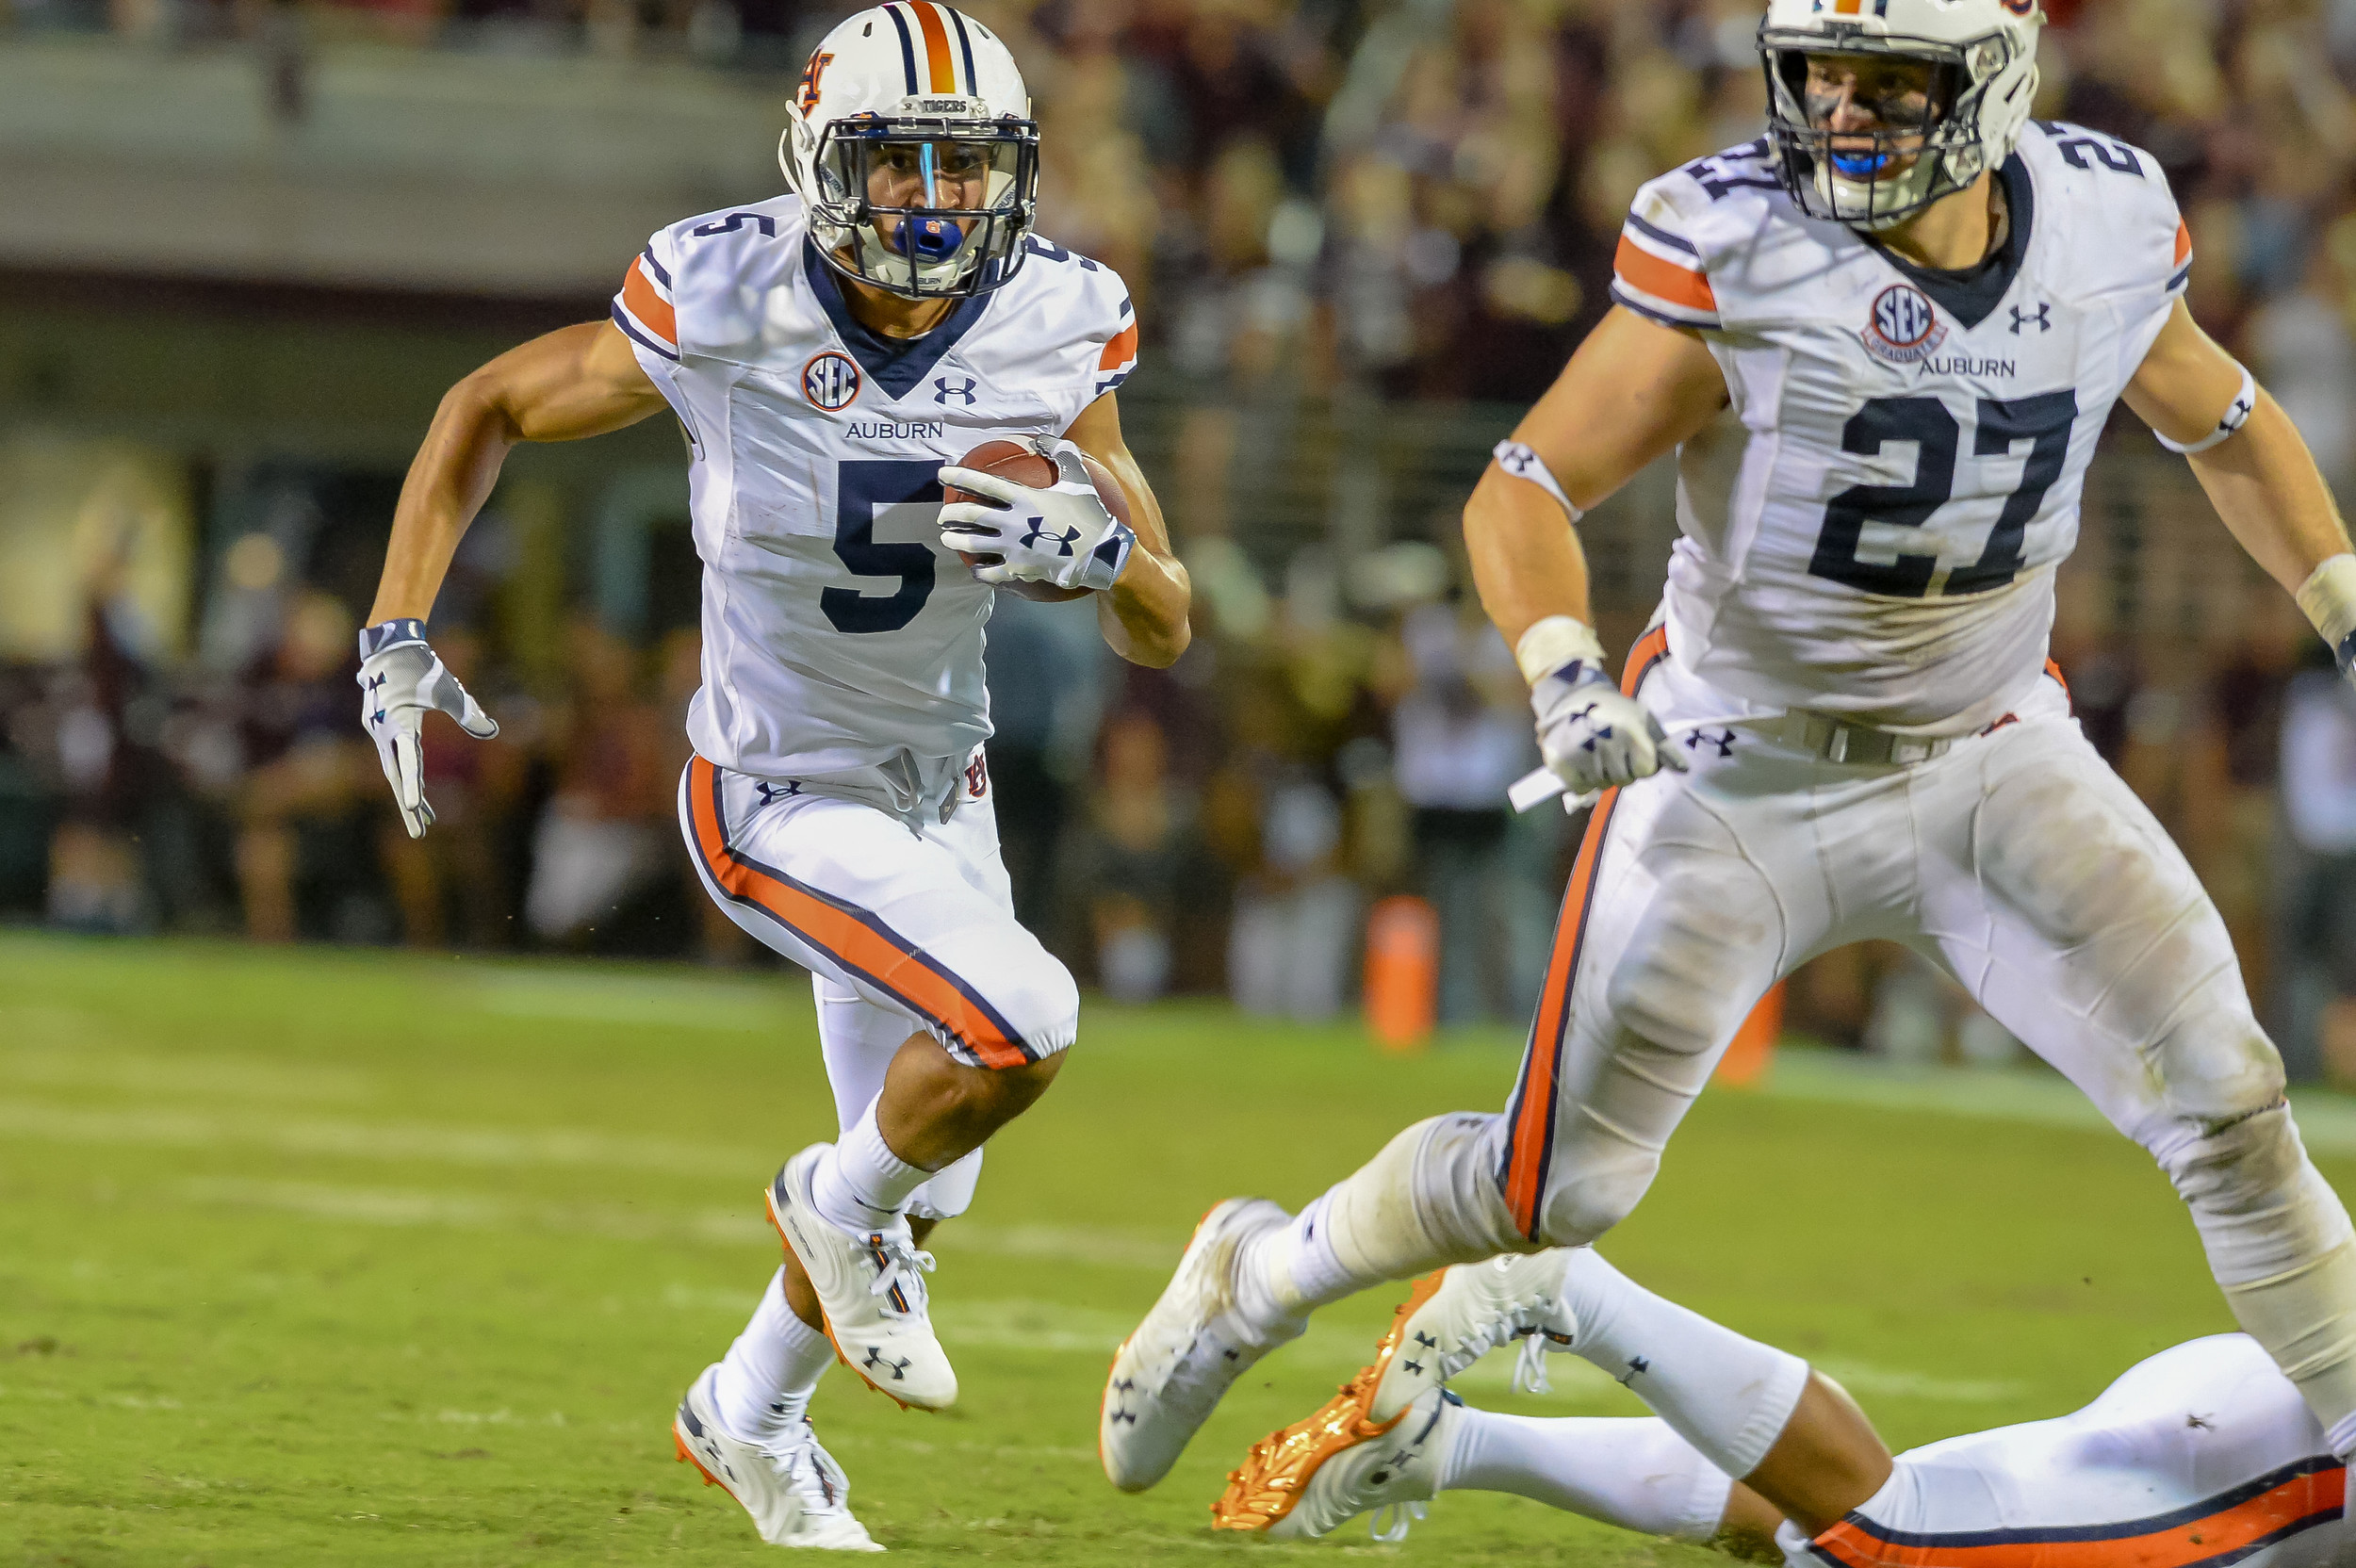 Auburn Tigers wide receiver Anthony Schwartz (5) runs behind the blocking of fullback Chandler Cox during the second half of Saturday's game, at Davis Wade Stadium in Starkville, MS. Daily Mountain Eagle -  Jeff Johnsey